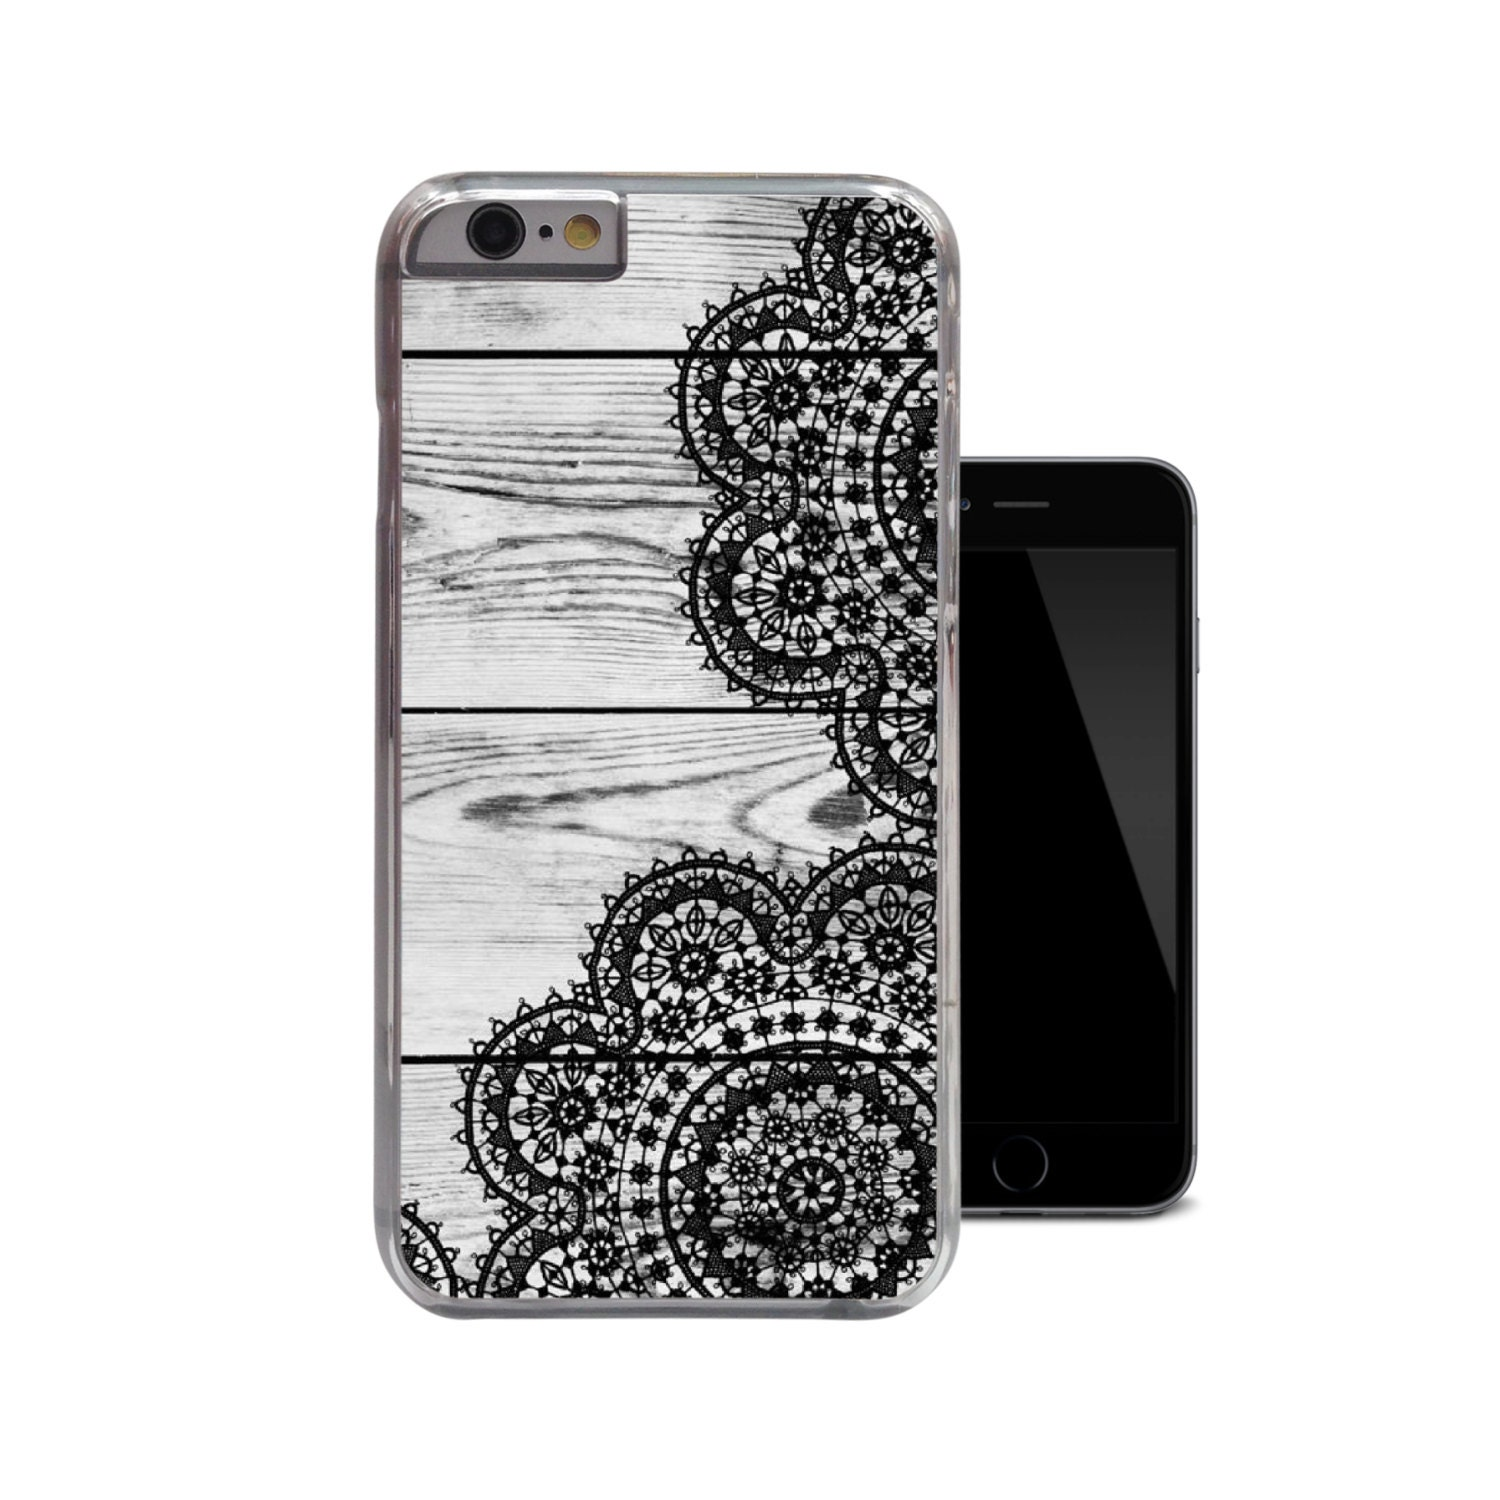 Light Wood Black Lace iPhone 6 Case iPhone 5 5s Case iPhone 5c